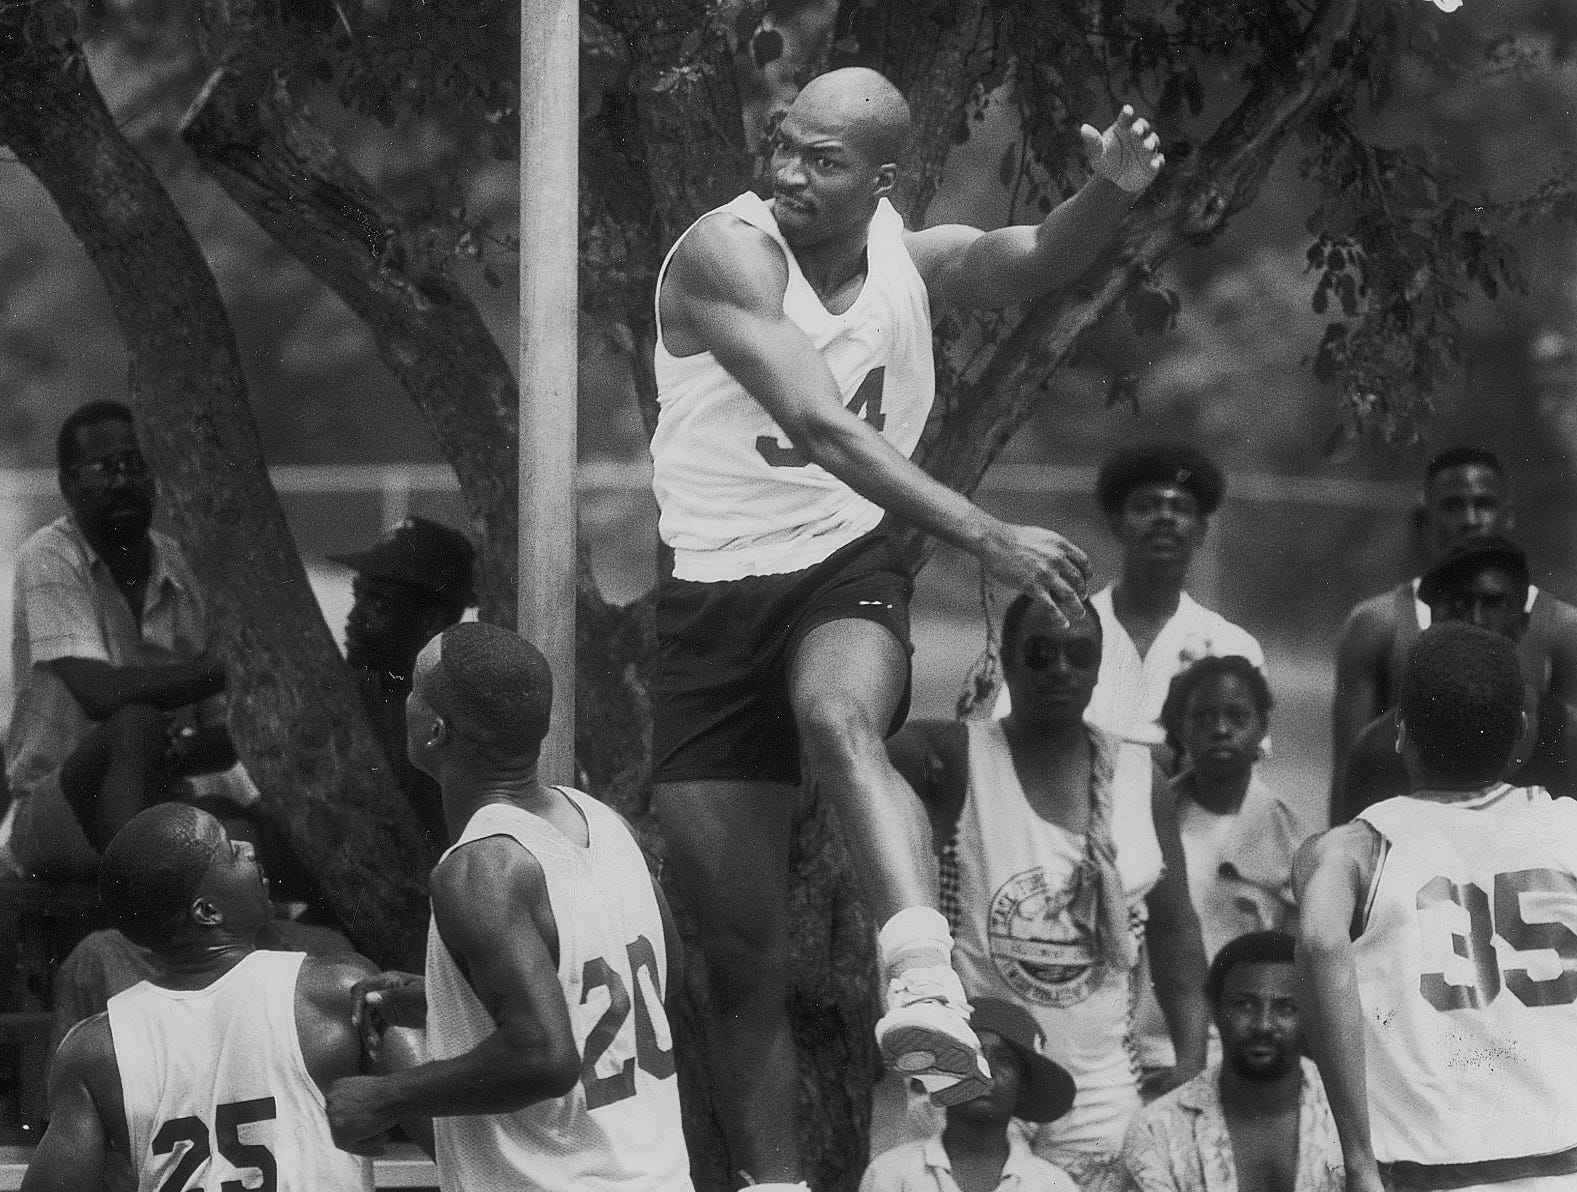 Jerome Brewer leaps high into the air and swats a shot away in a basketball game at Washington Park sponsored by the Black Expo.  Hundreds of people came to enjoy the Soul Fest and Dust Bowl basketball game Jun 16, 1990.